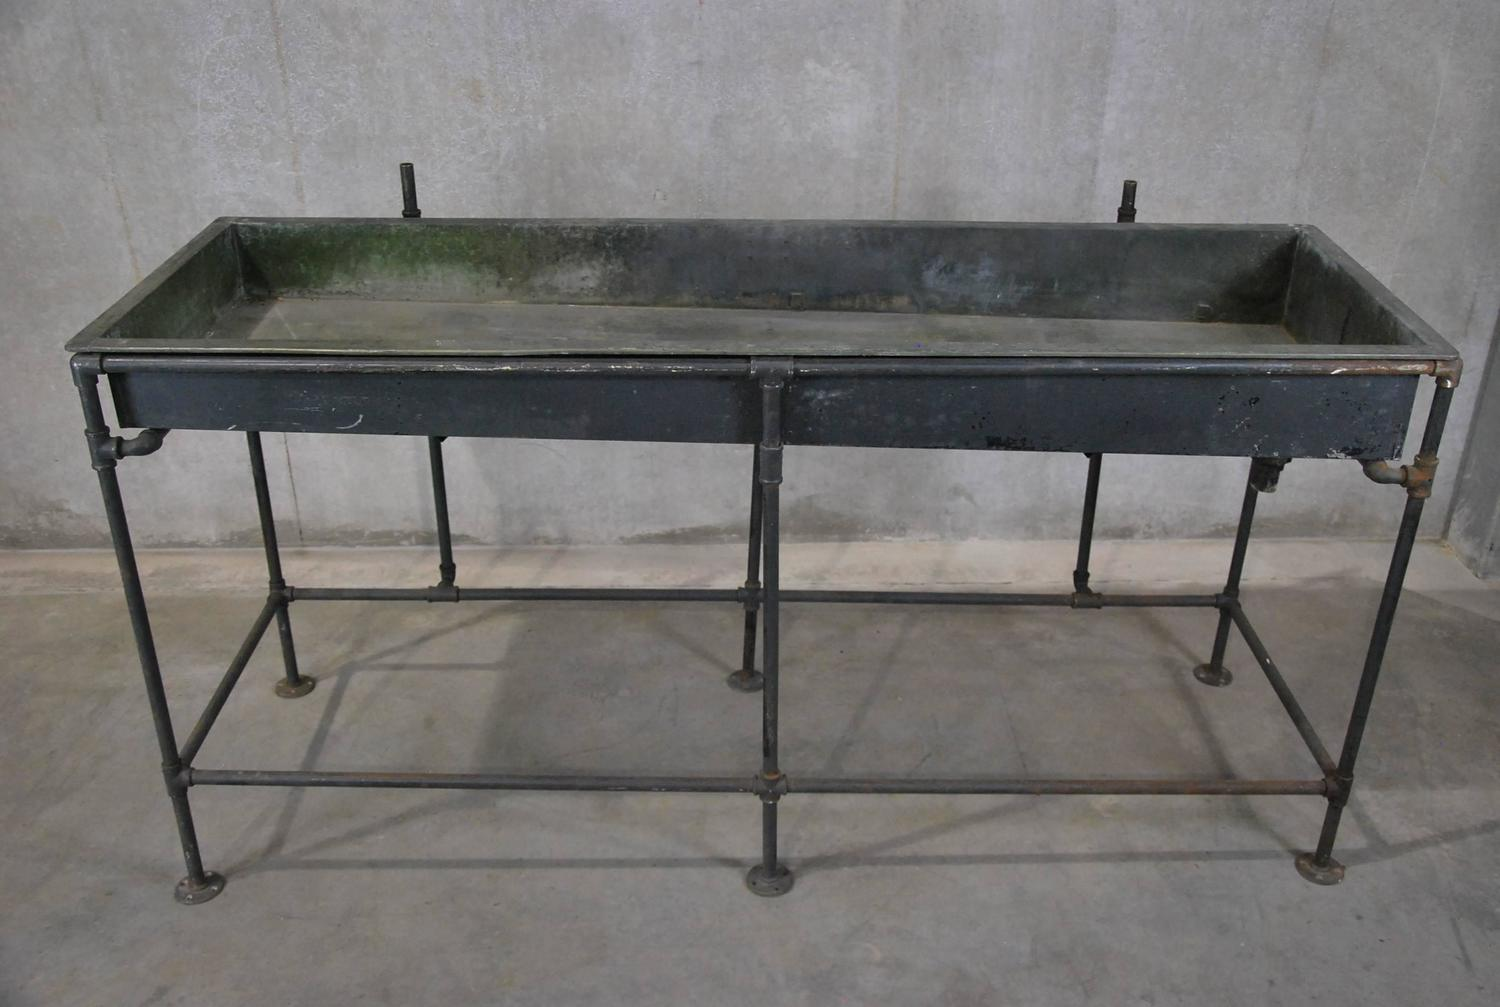 Large Industrial Sink : 1940 Large Monel Lined Industrial Lab Sink at 1stdibs